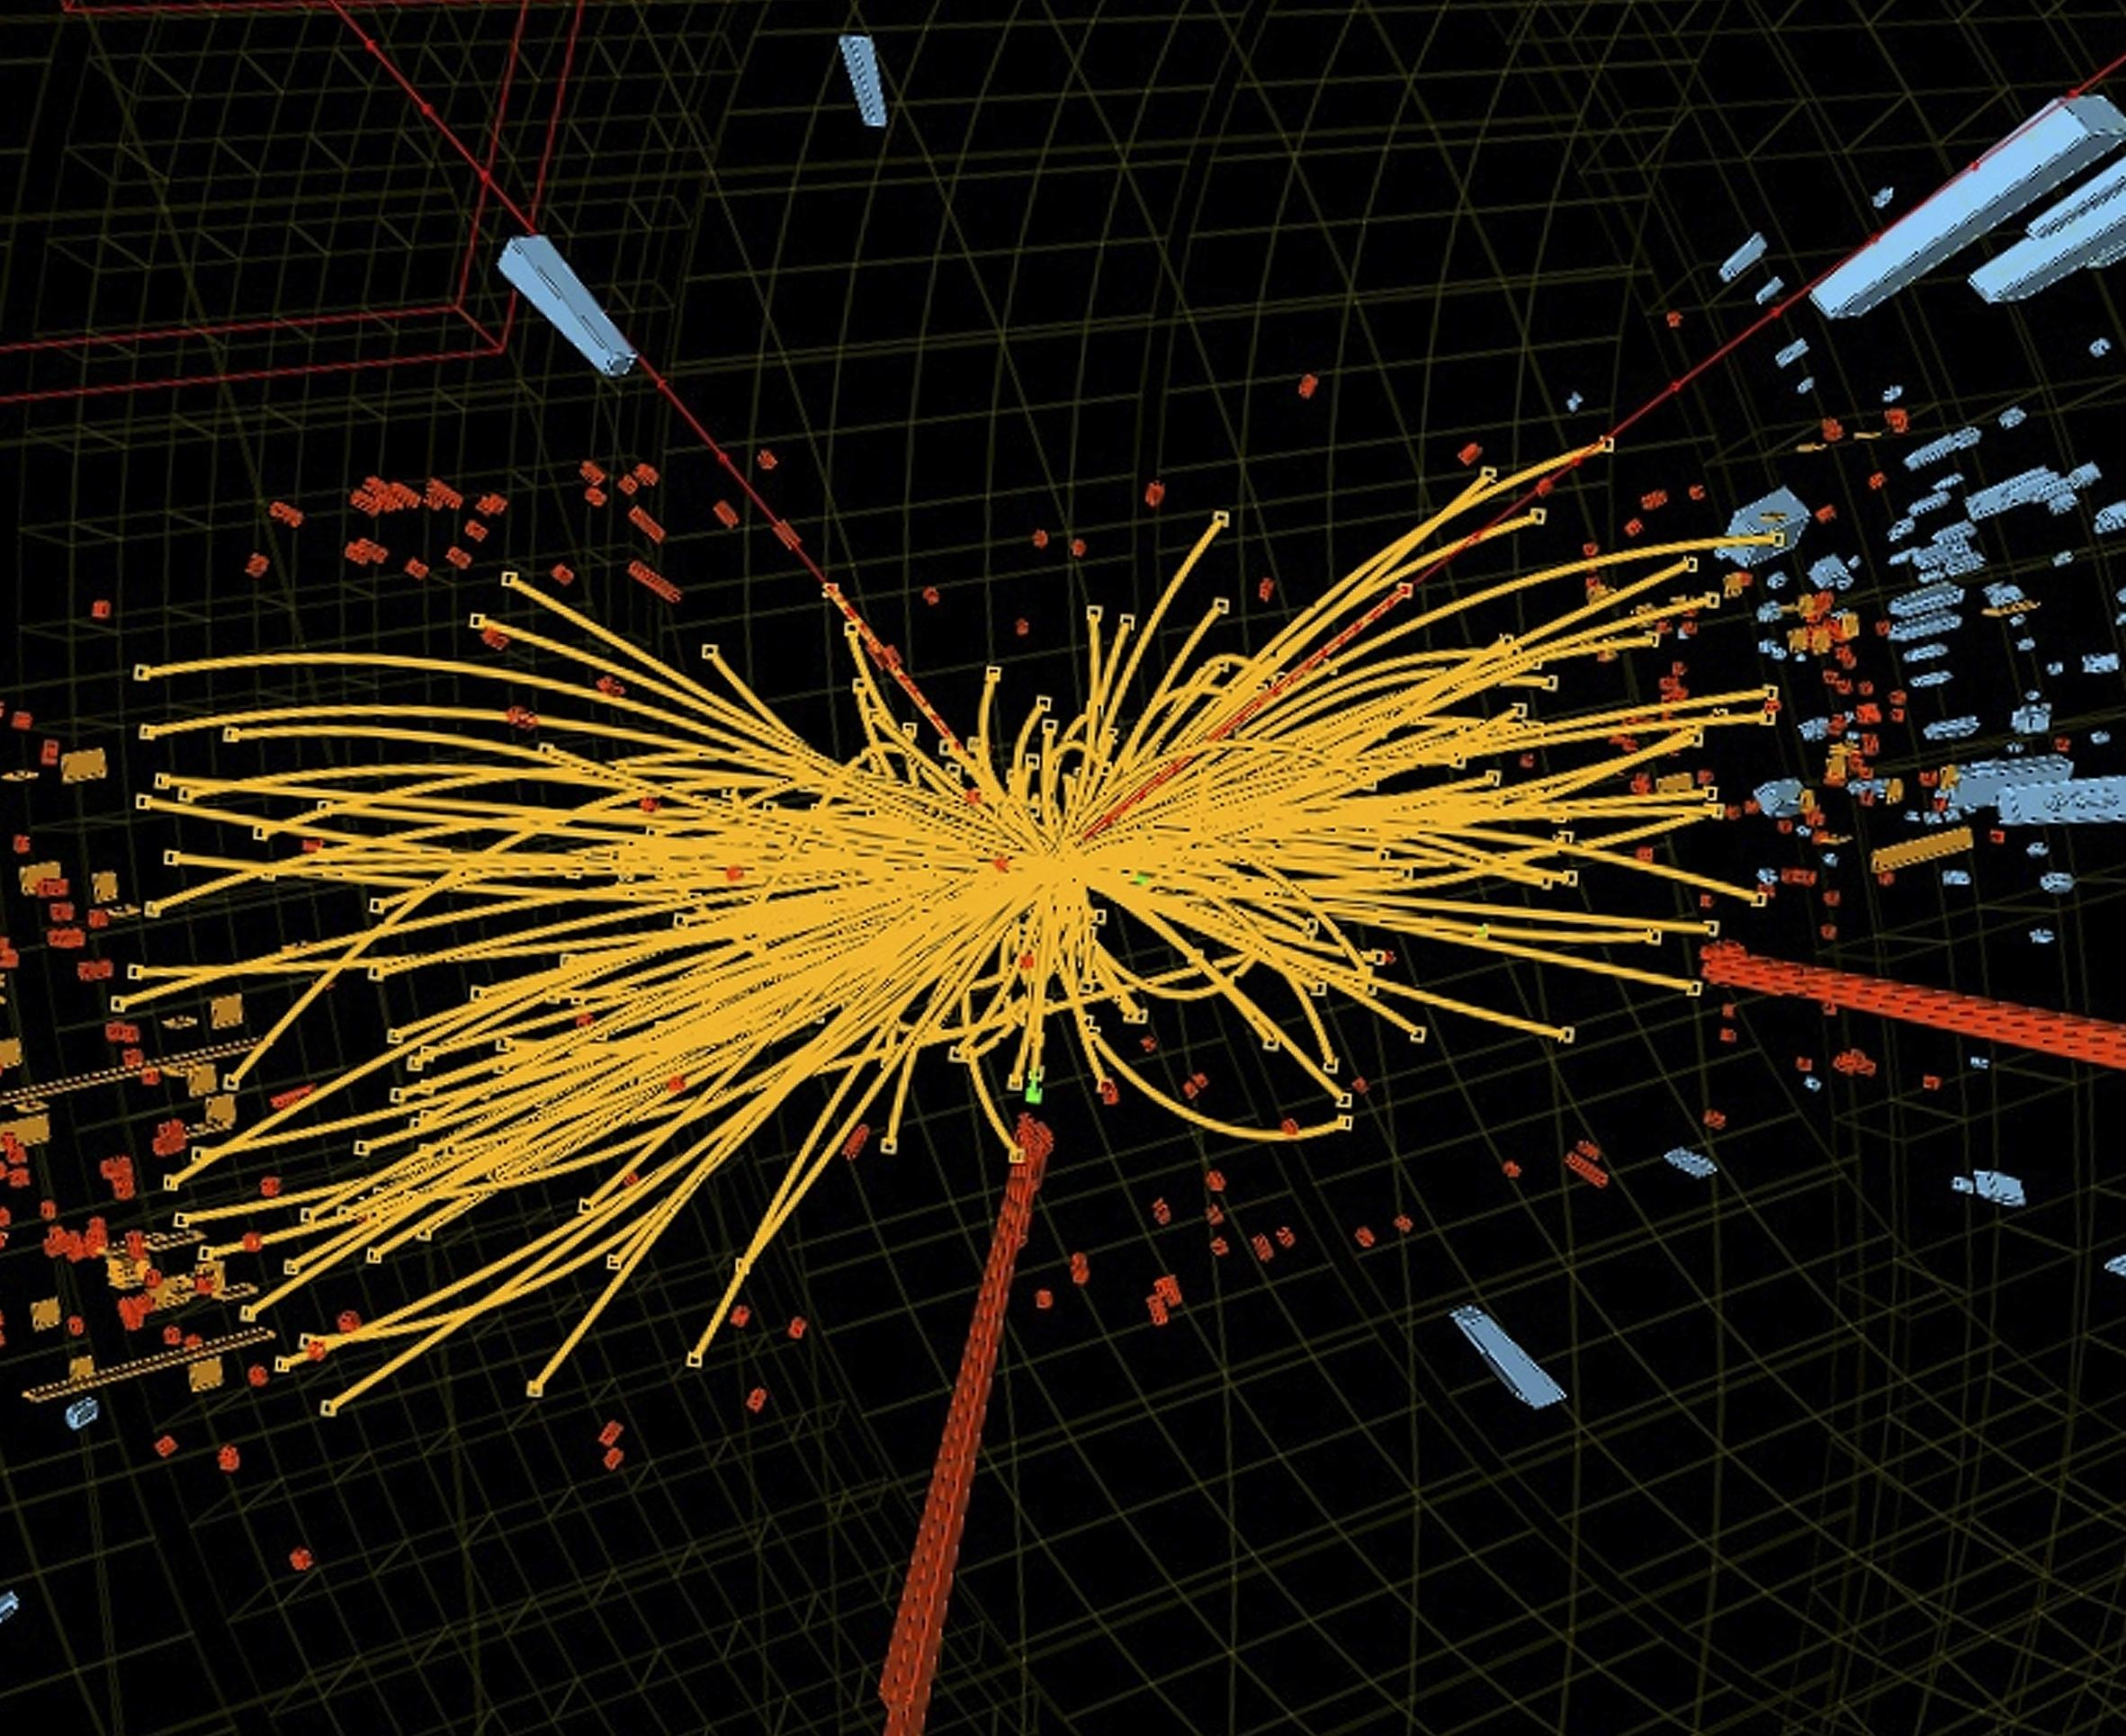 Gallery: Search for the Higgs Boson - Live Science